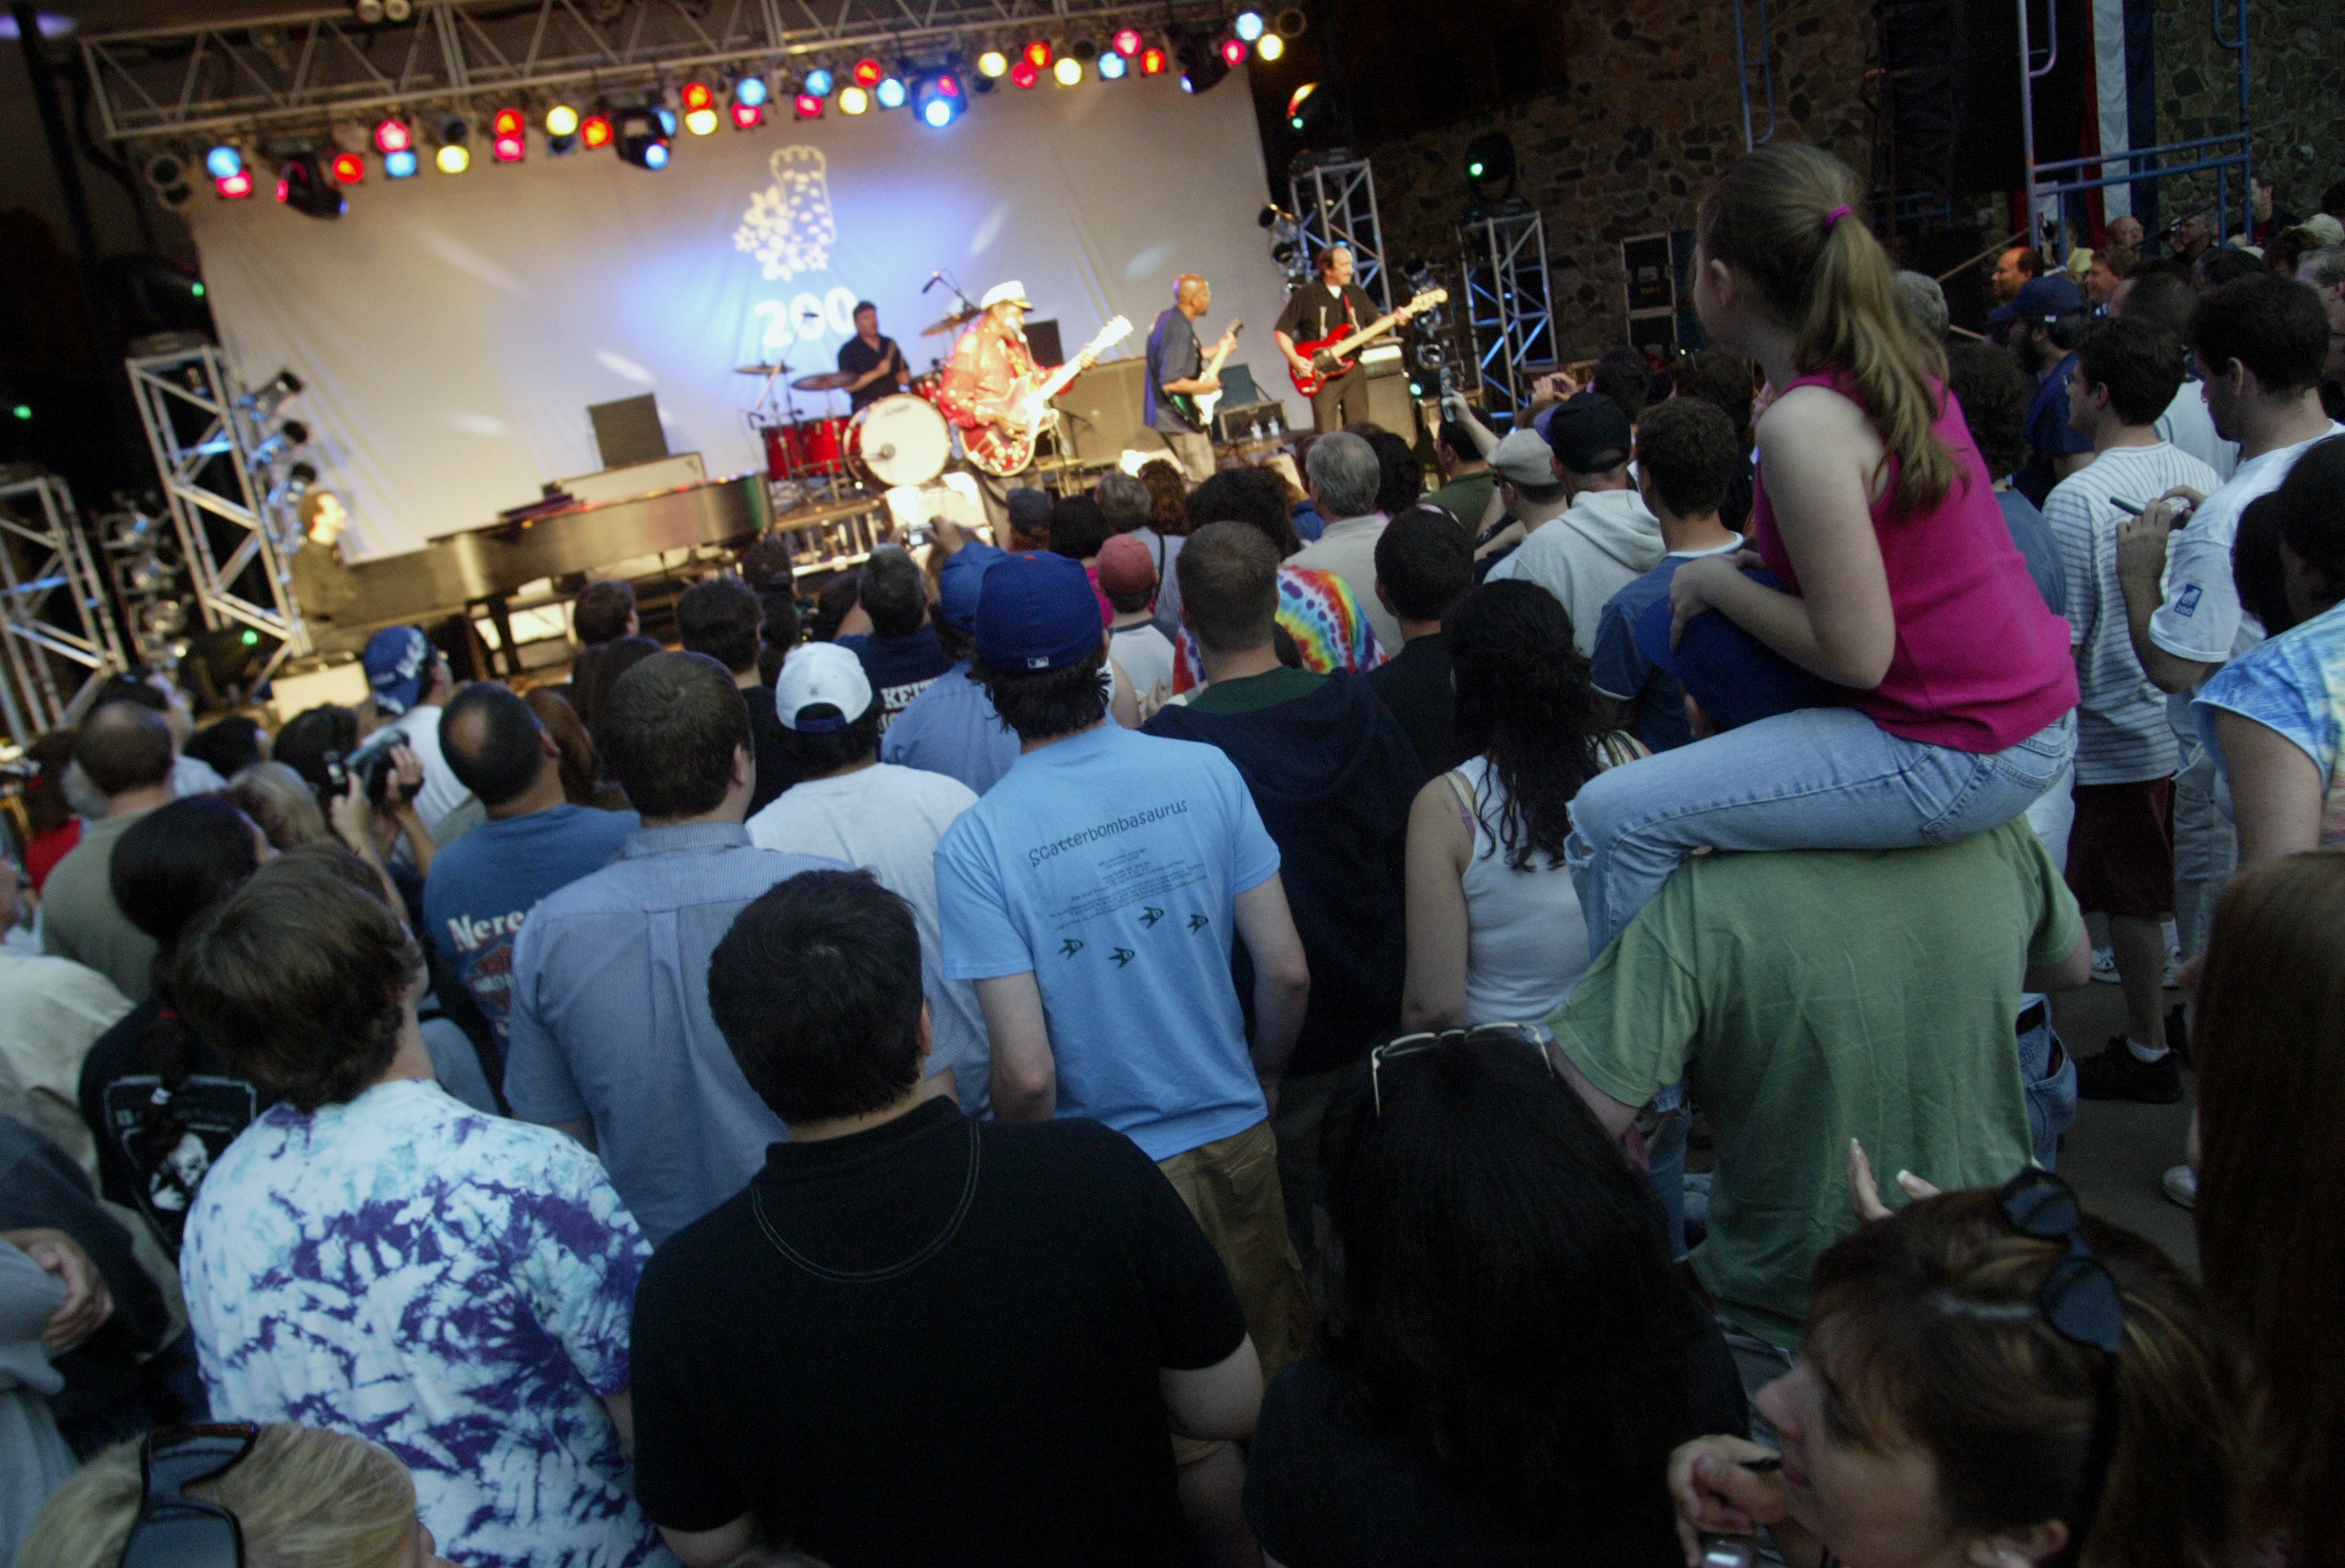 Chuck Berry performs for a large crowd at Hubbard park on June 17, 2006.  More than 5,000 people crowded in front of the bandshell at Hubbard park to see Berry perform.